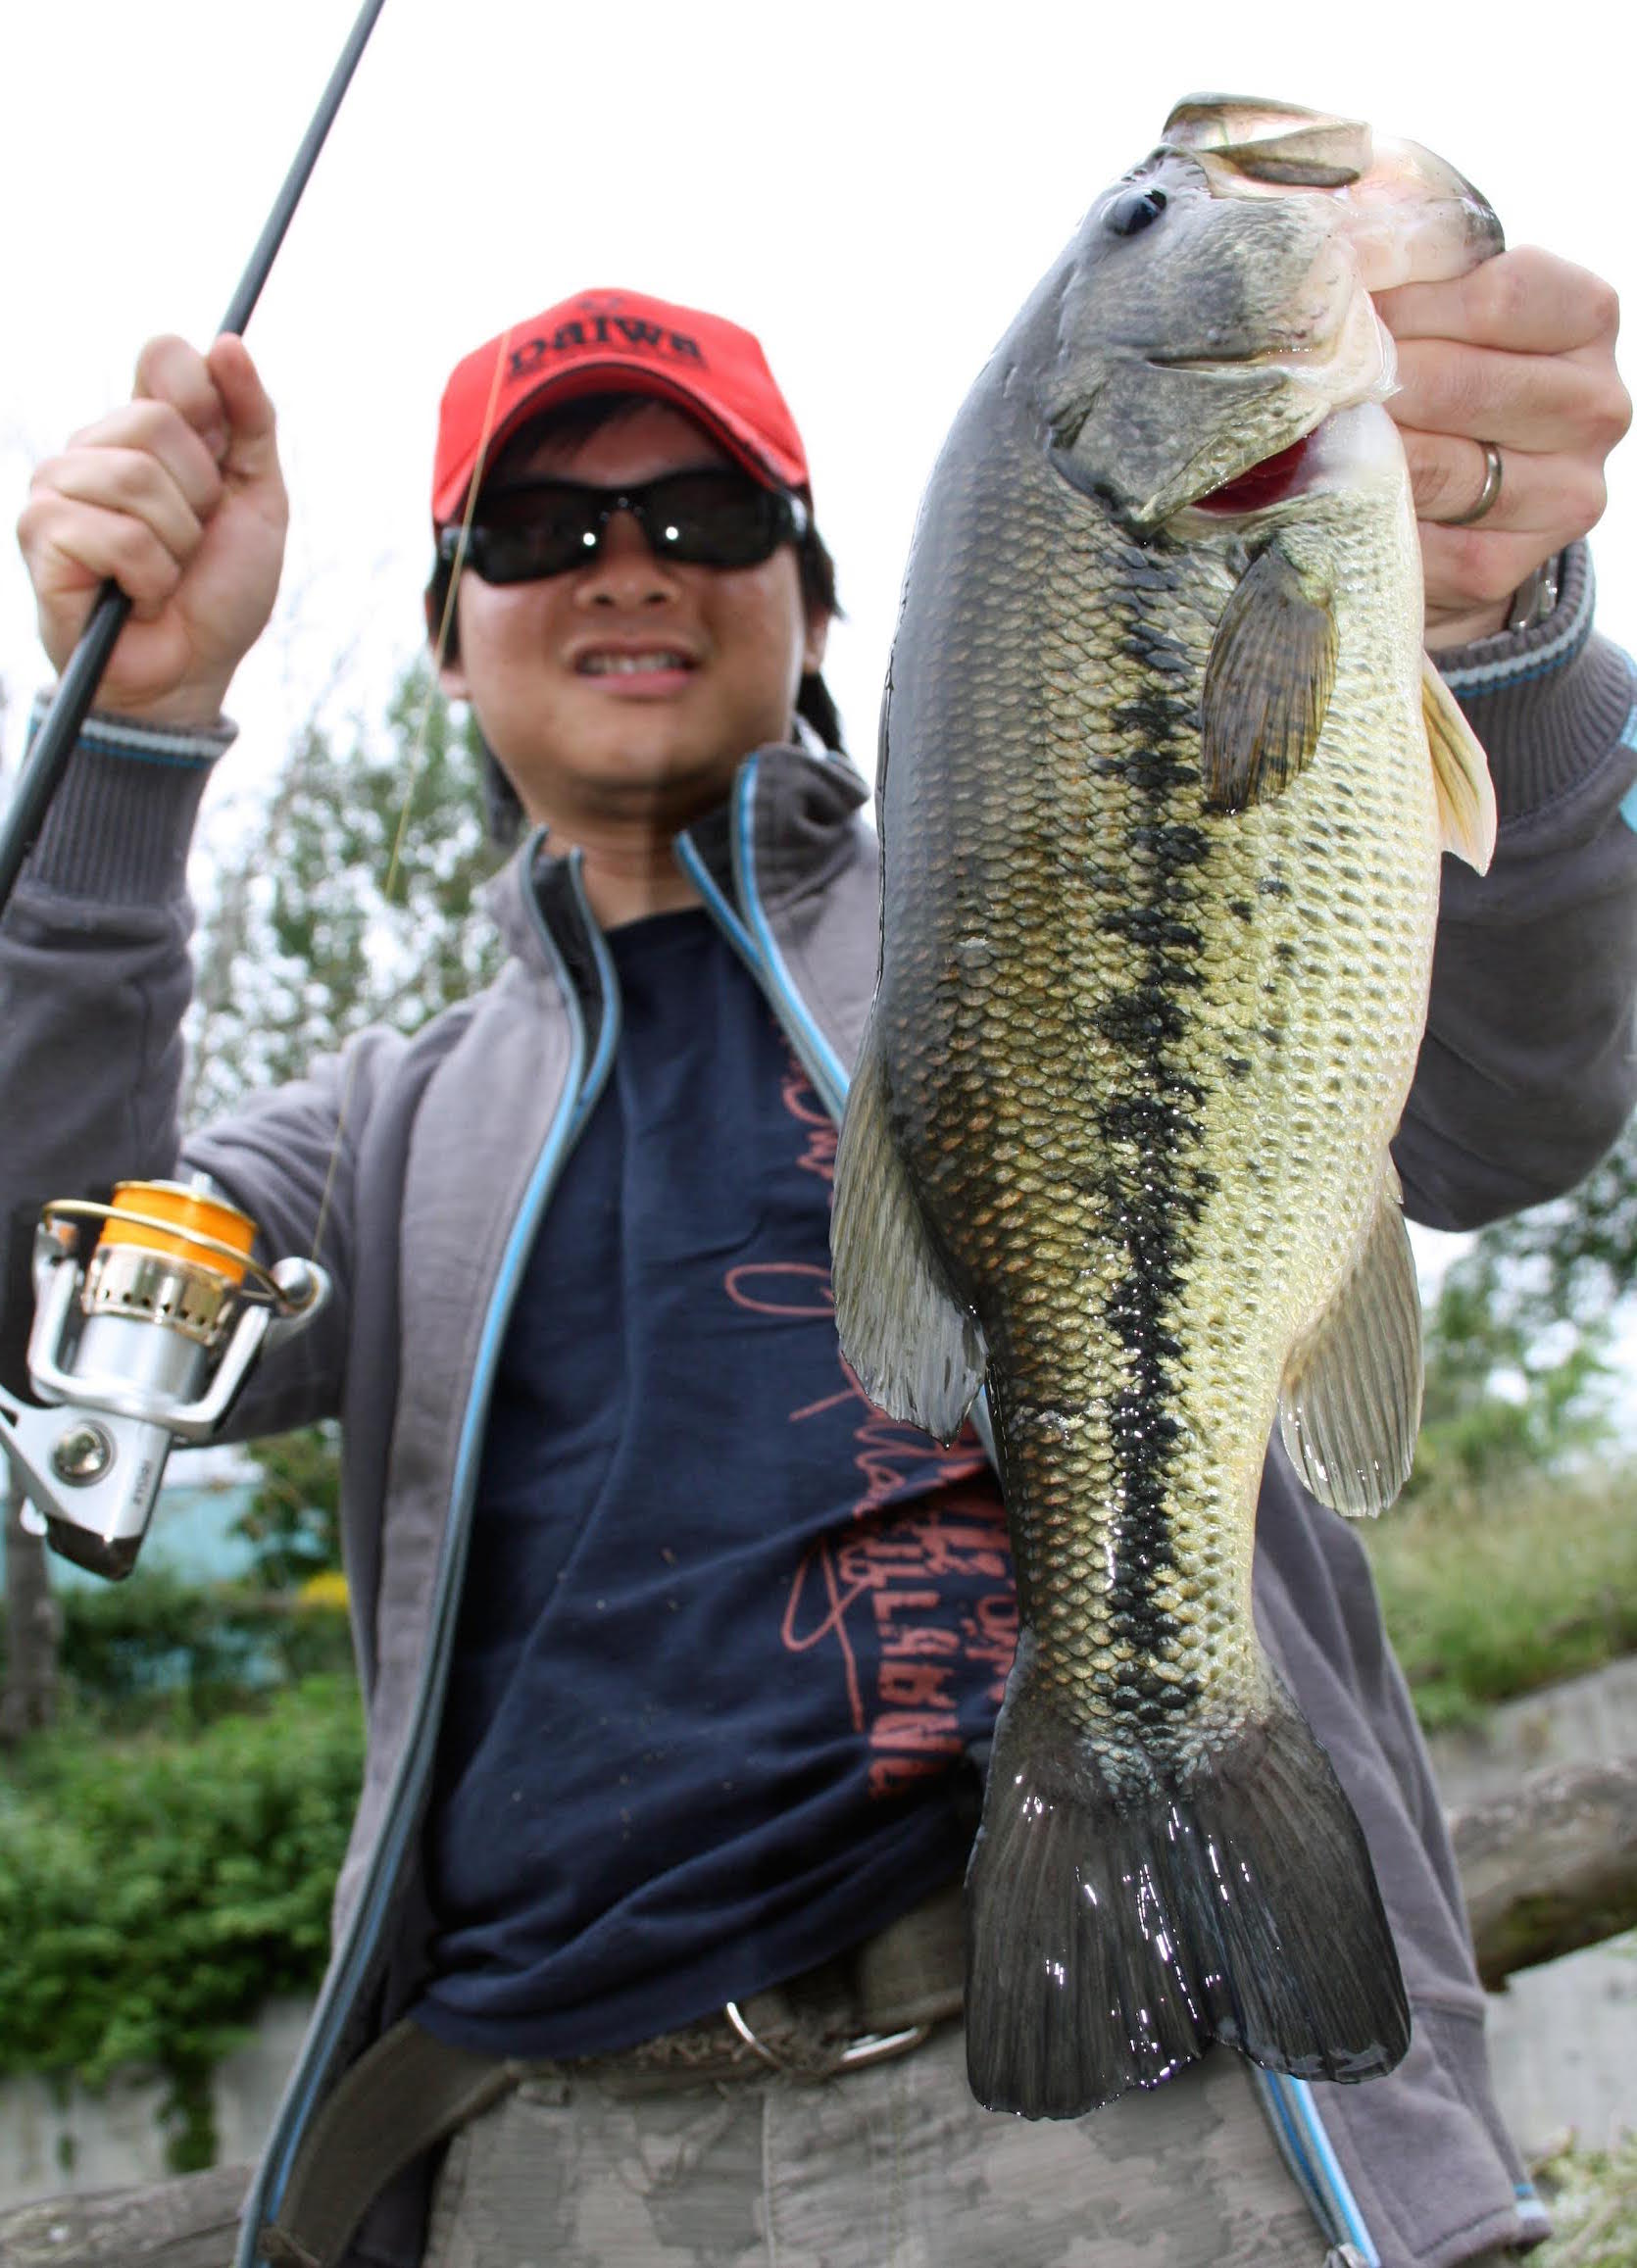 Pic. 2. A 3lb'er on live perch. I caught this fish on finesse live bait rig in the clearest part of the muddy pond.